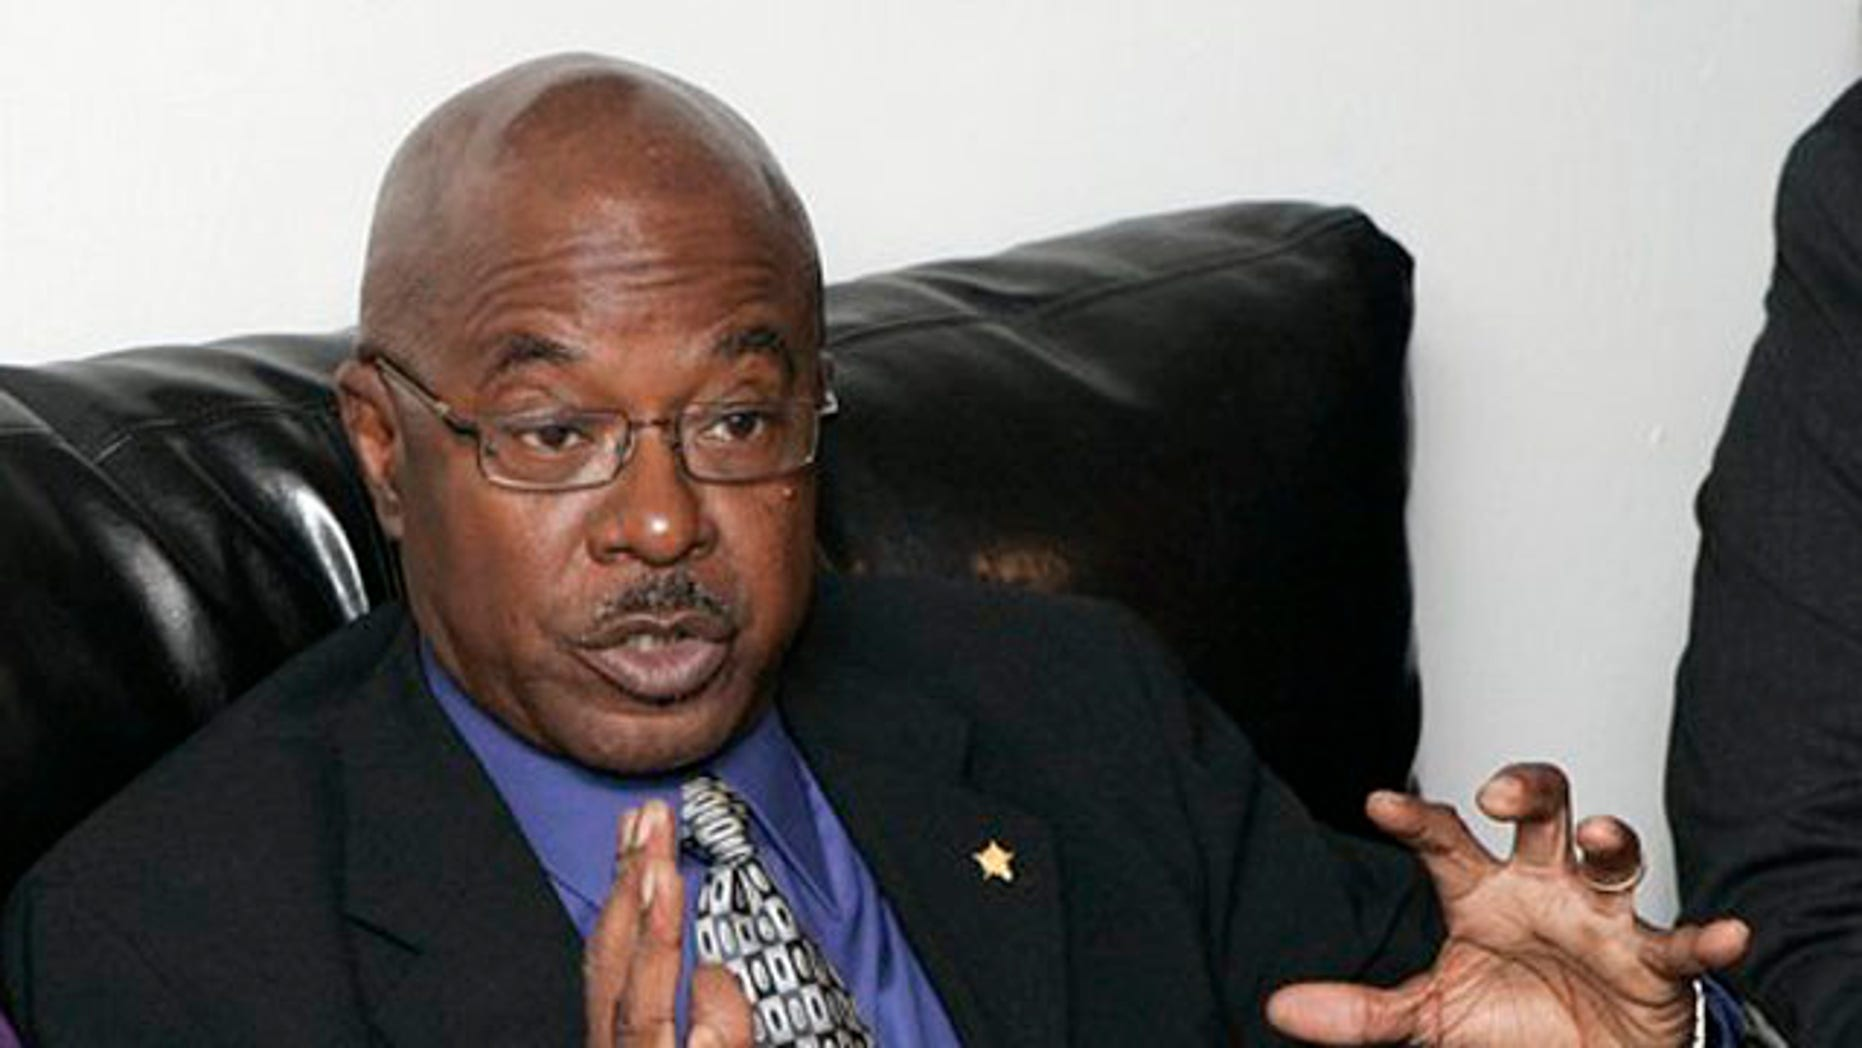 November 28, 2011: Julian White, former director of Florida A&M University's famed Marching 100 band, speaks at a news conference.